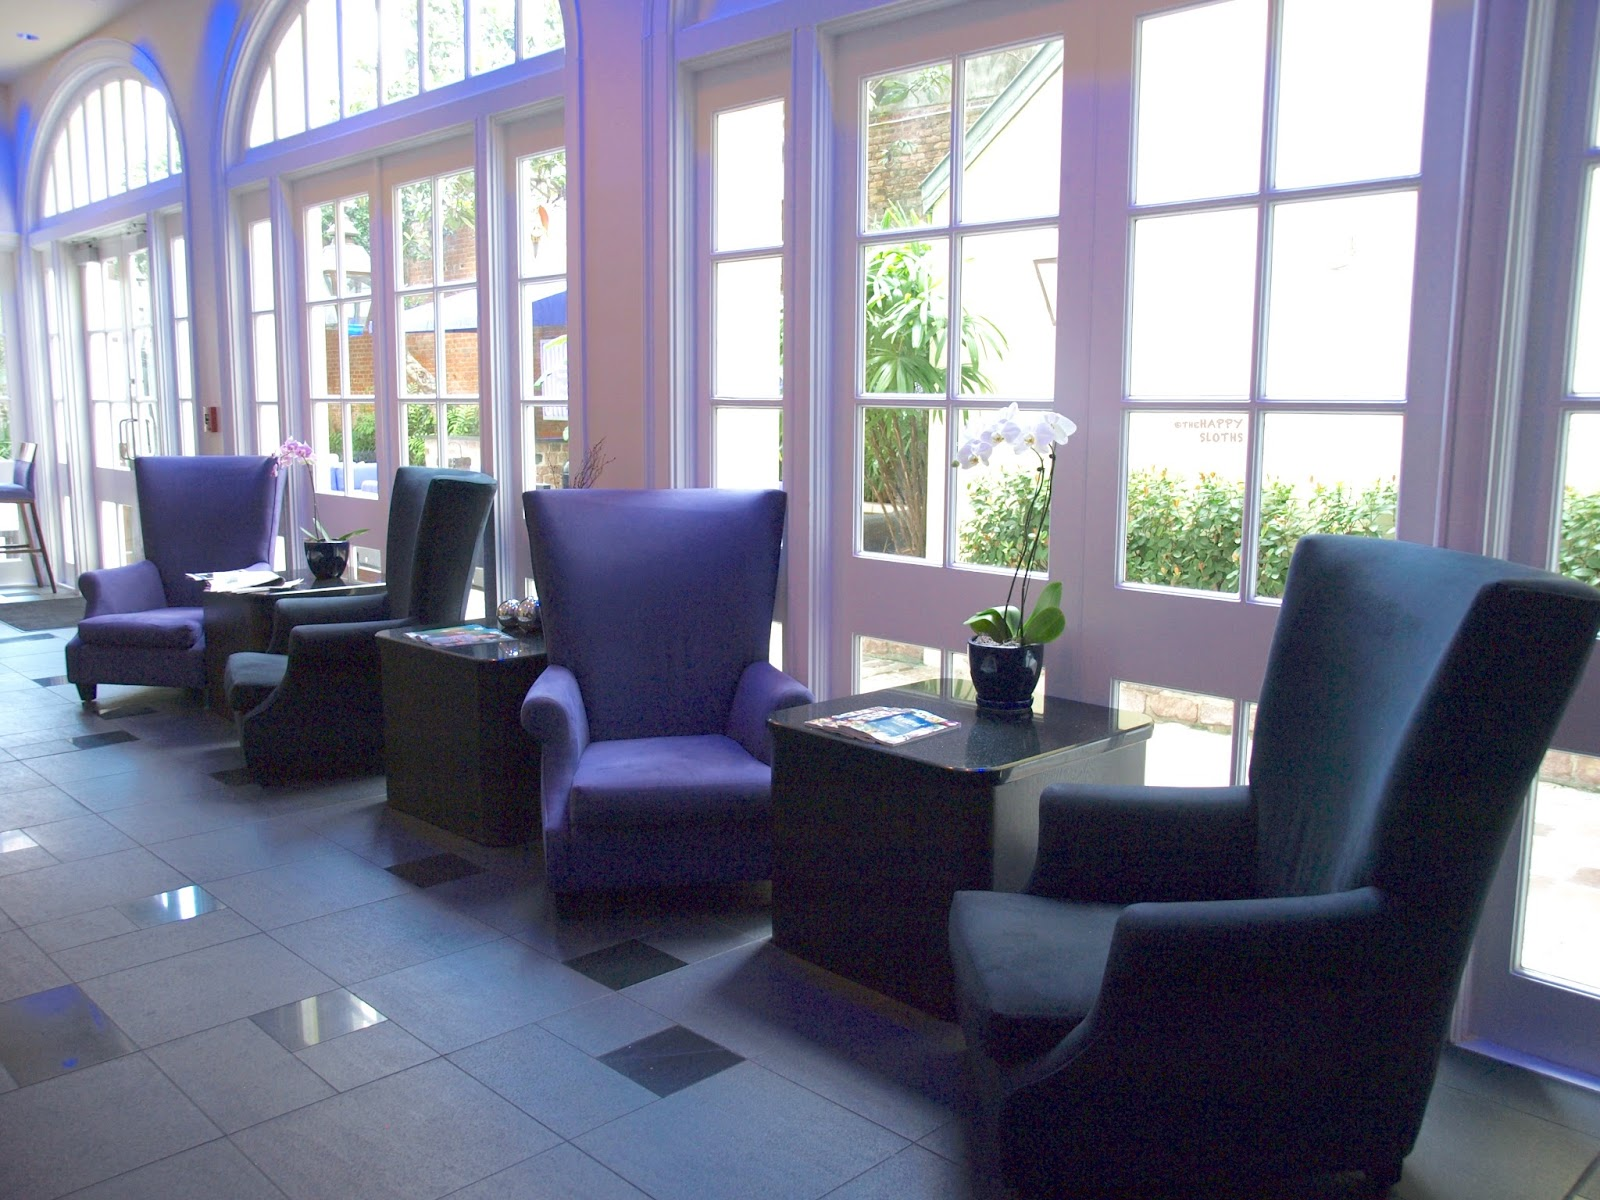 Hotel Le Marais New Orleans Review | Lobby